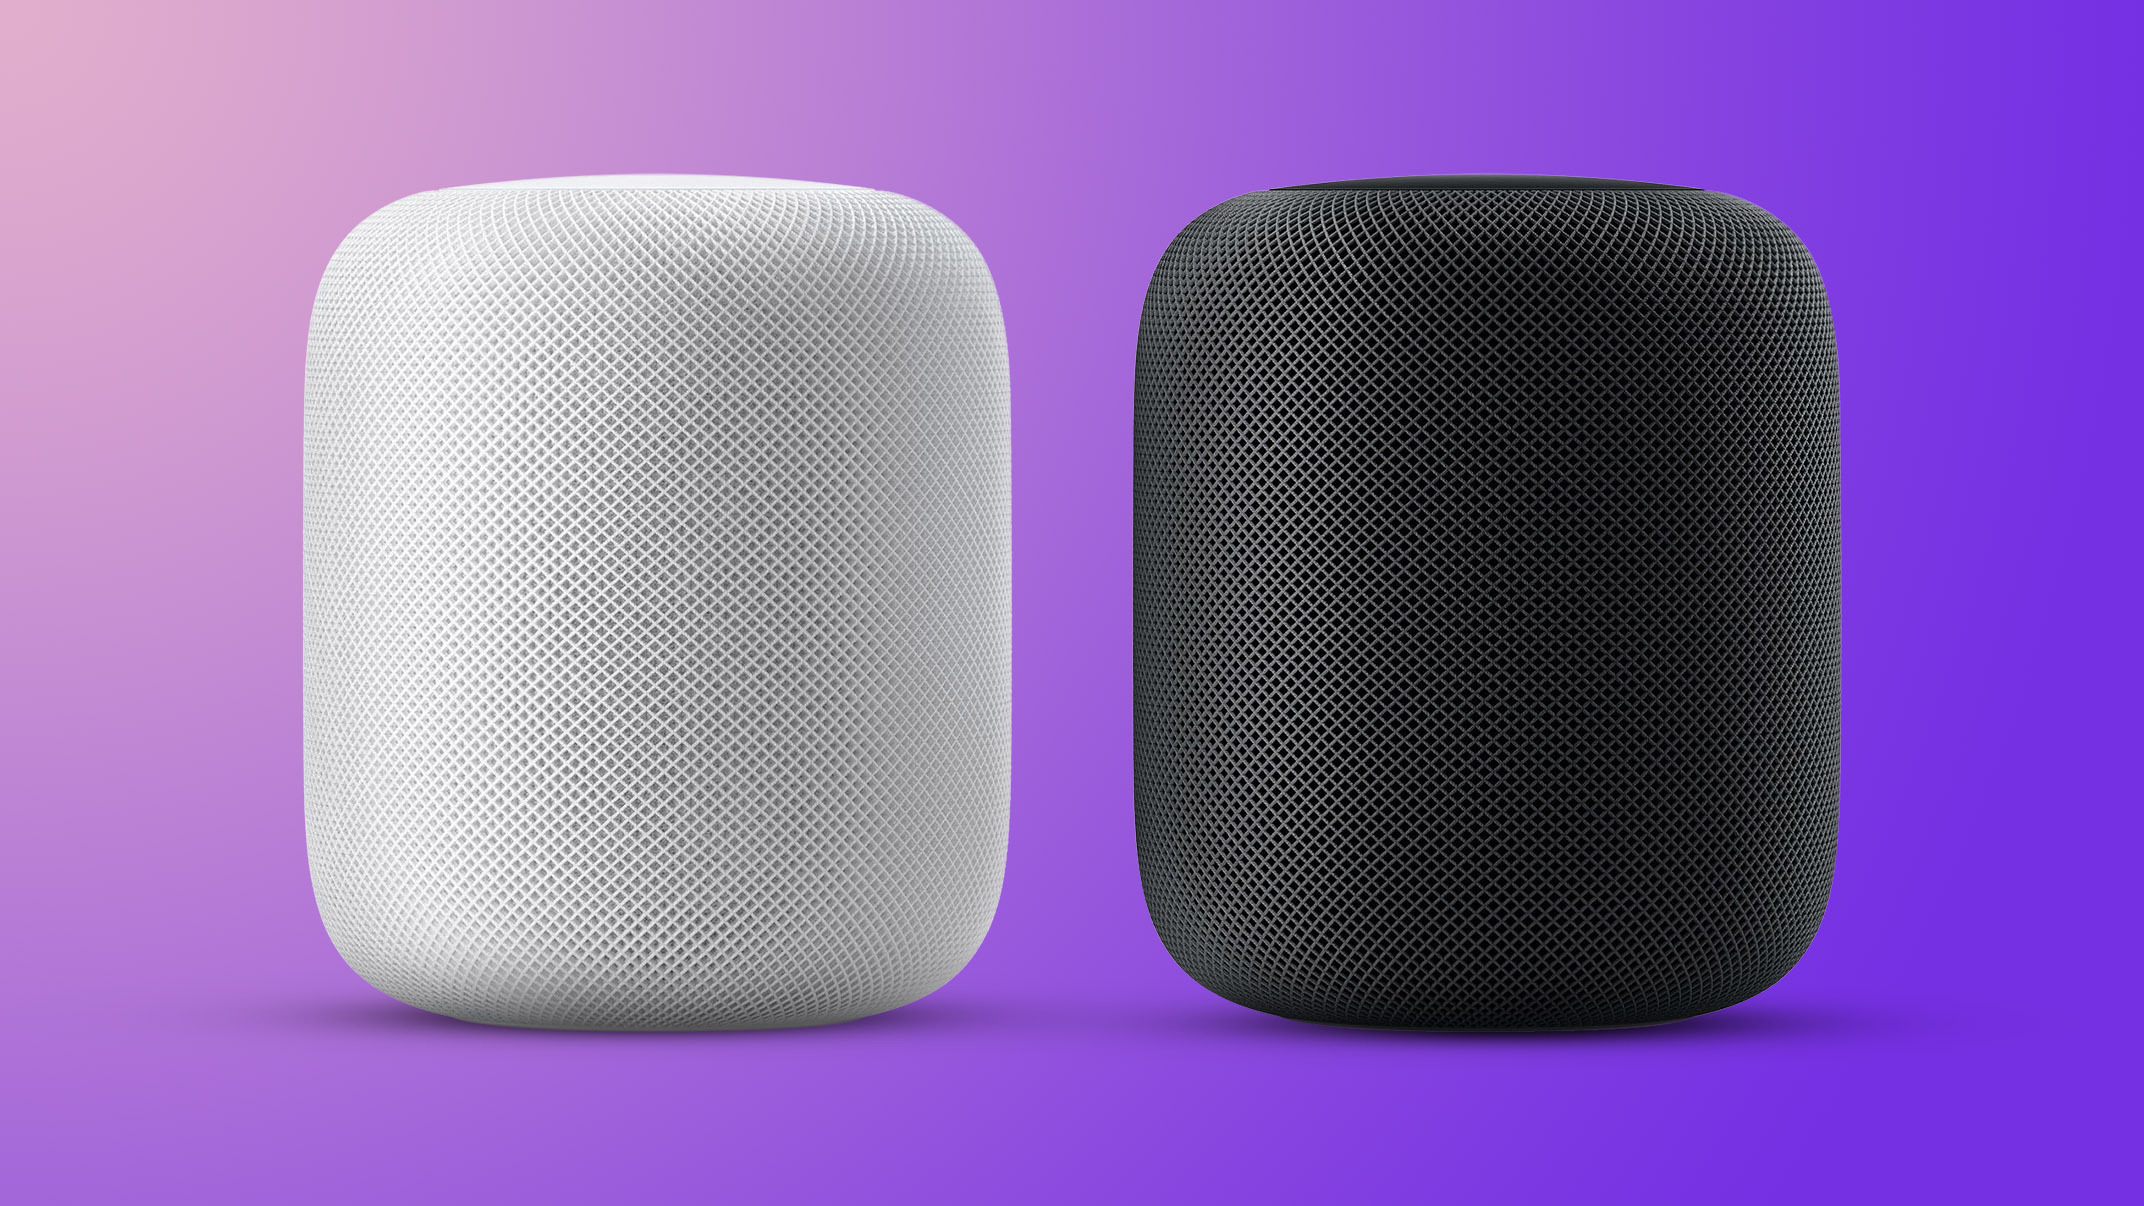 HomePod Now Unavailable From Apple in Canada After Being Discontinued